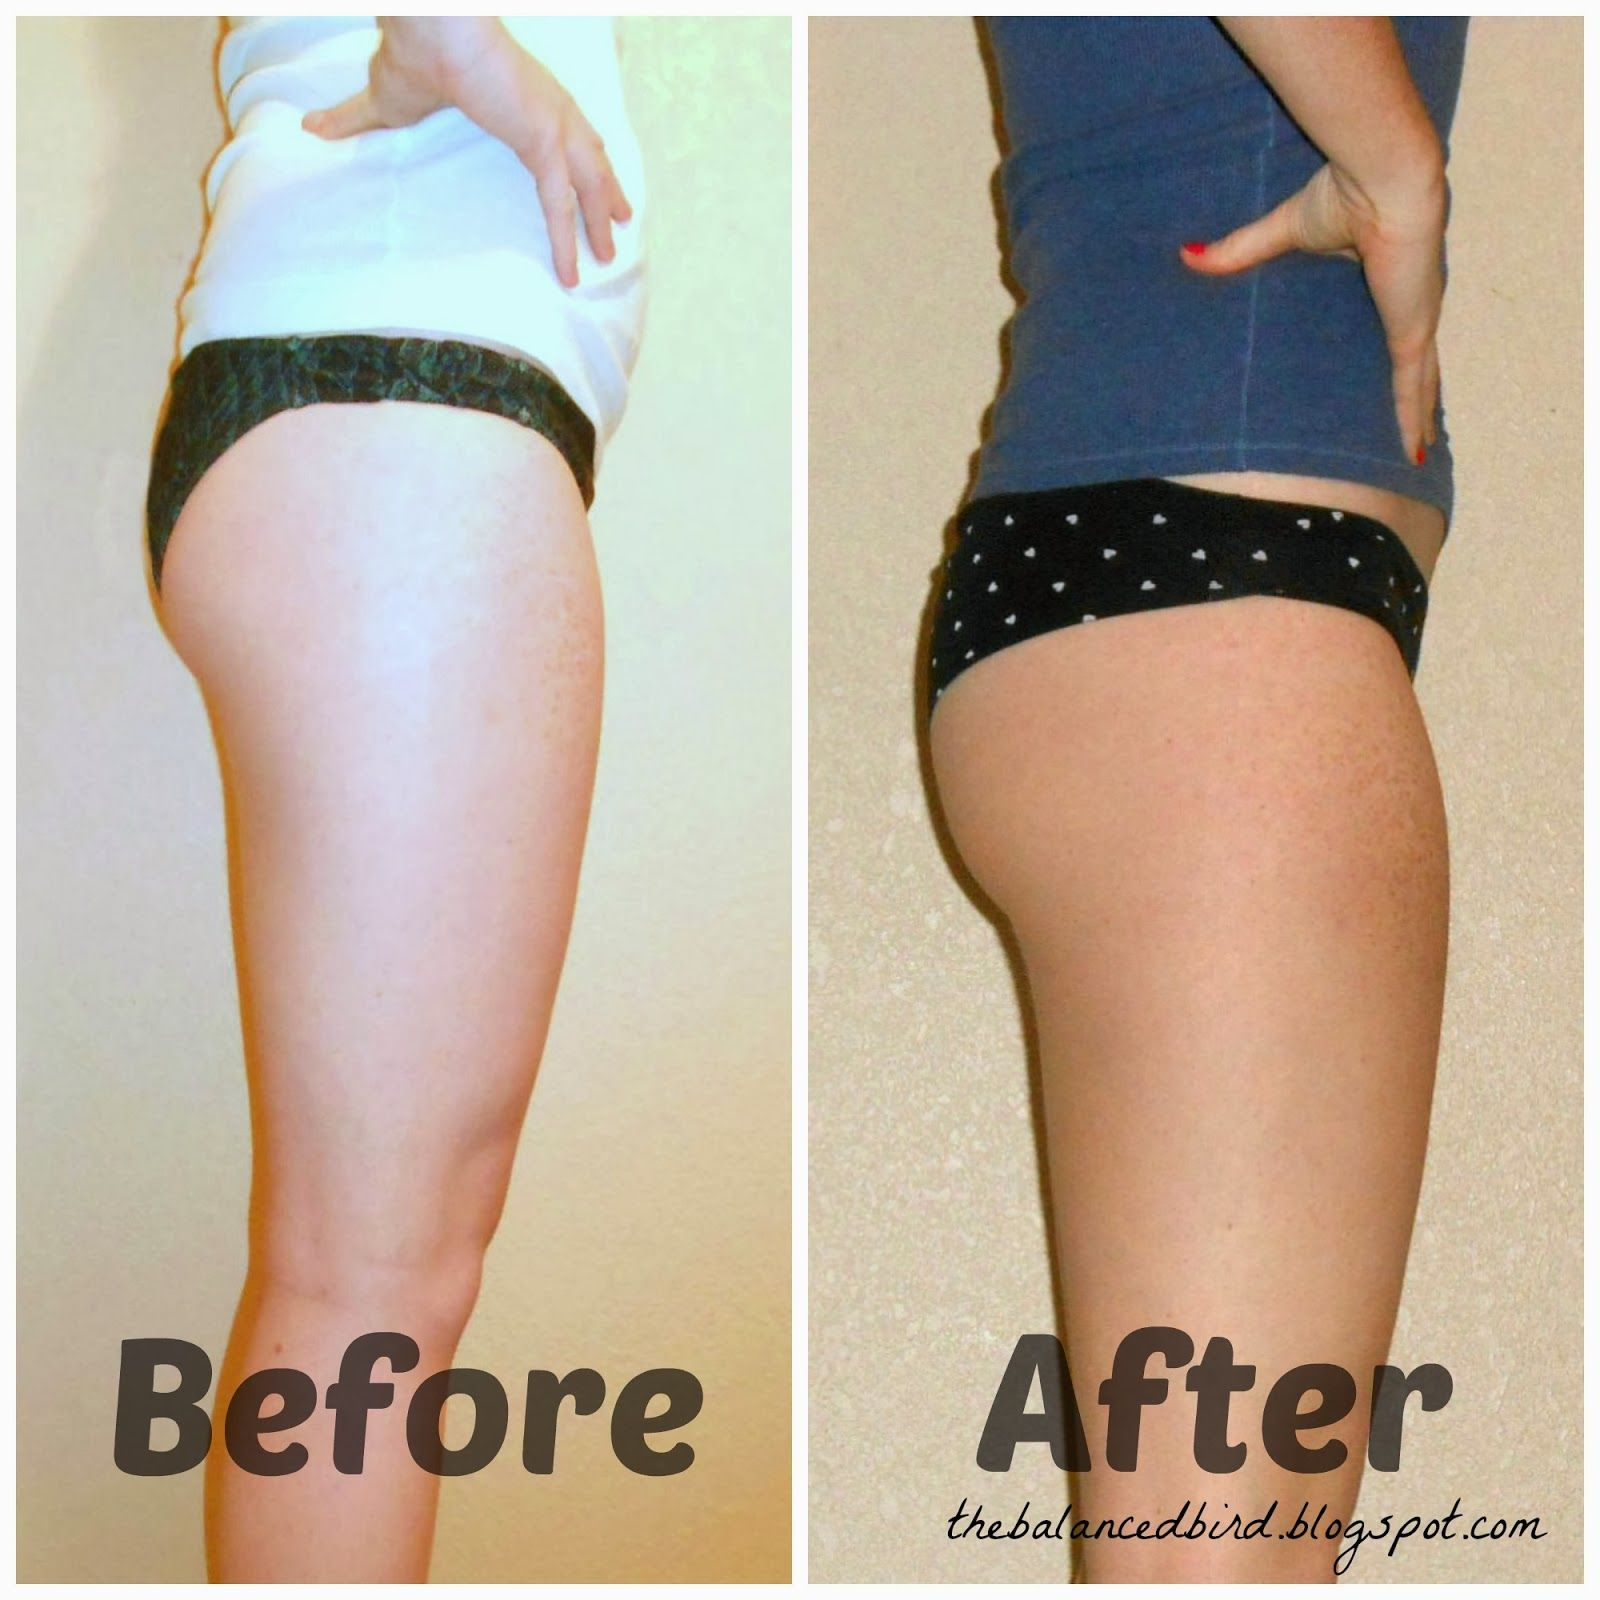 The 30 Day Squat Challenge Before & After Photo | Before and